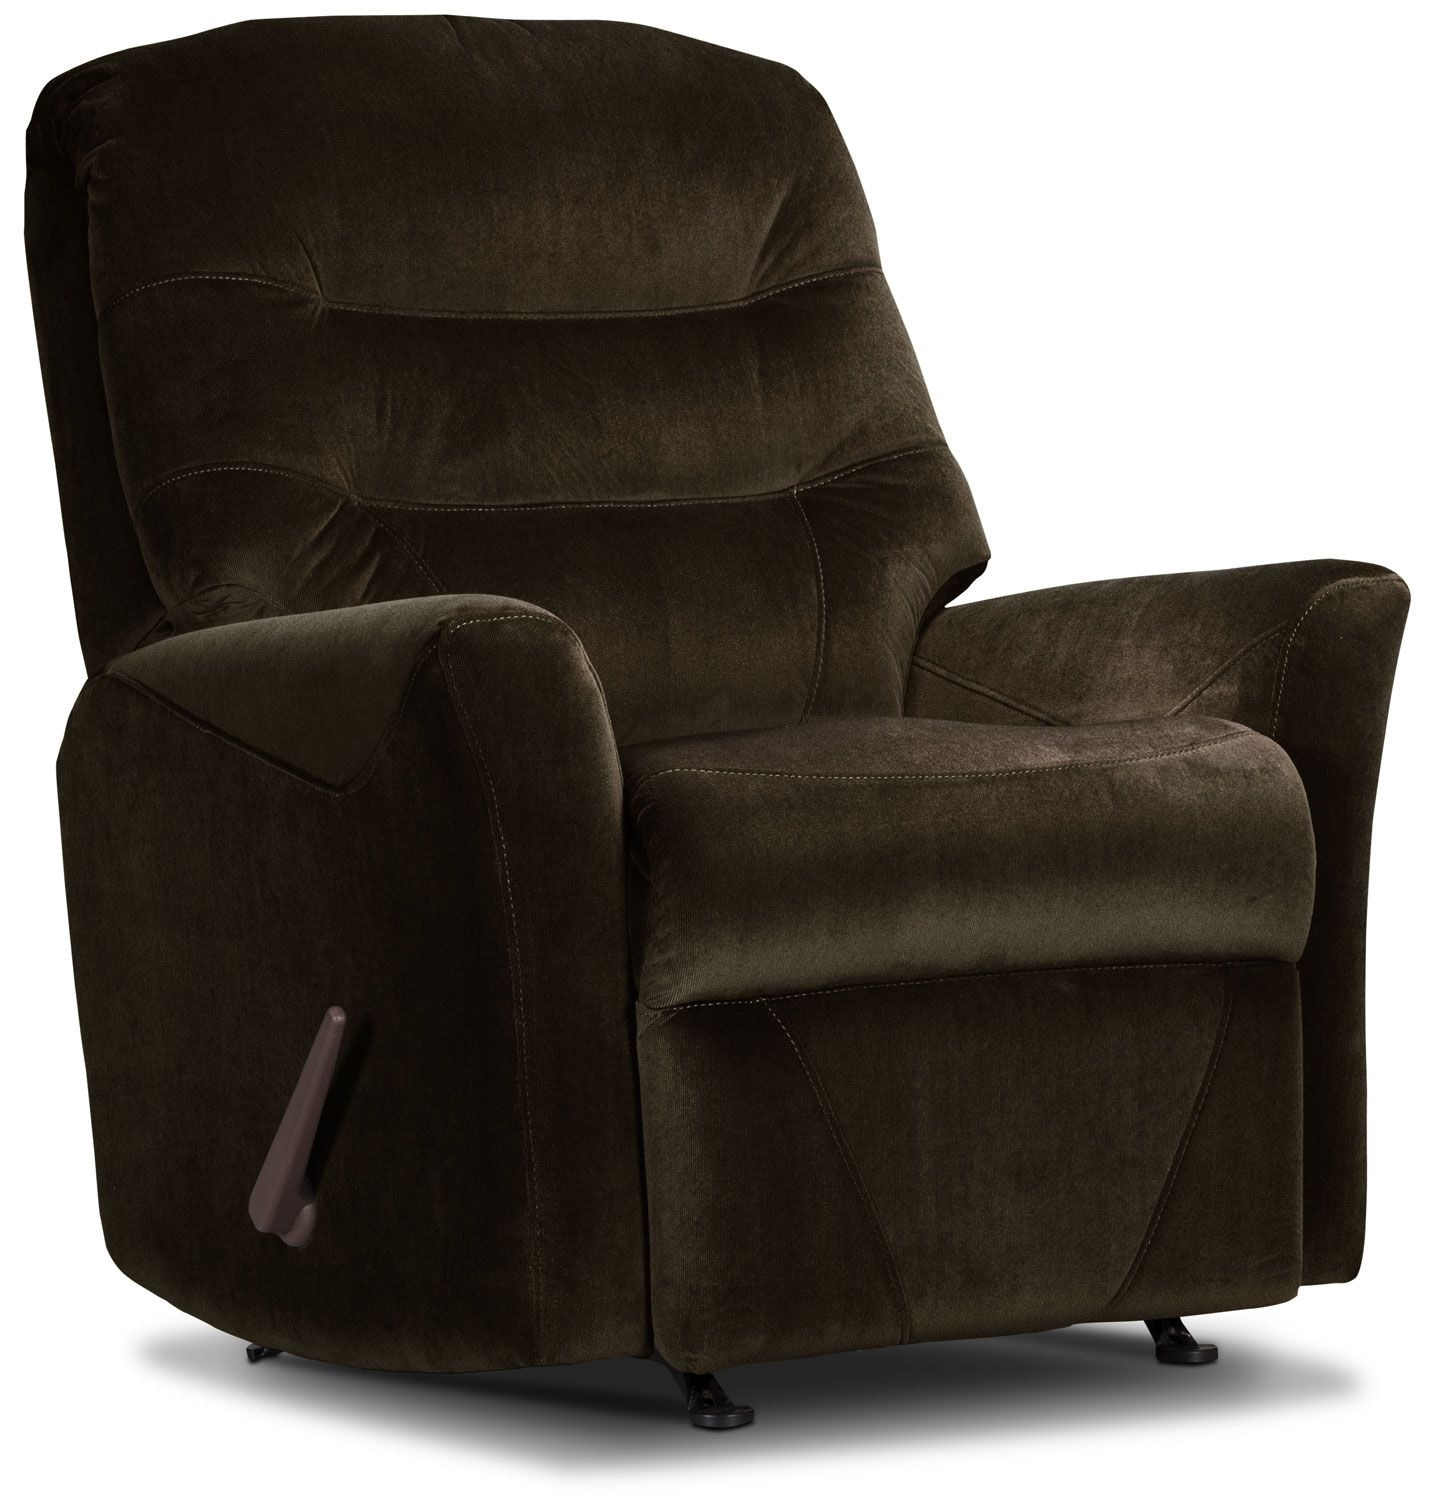 Designed2B Recliner 4560 Microsuede Rocker Recliner - Chocolate